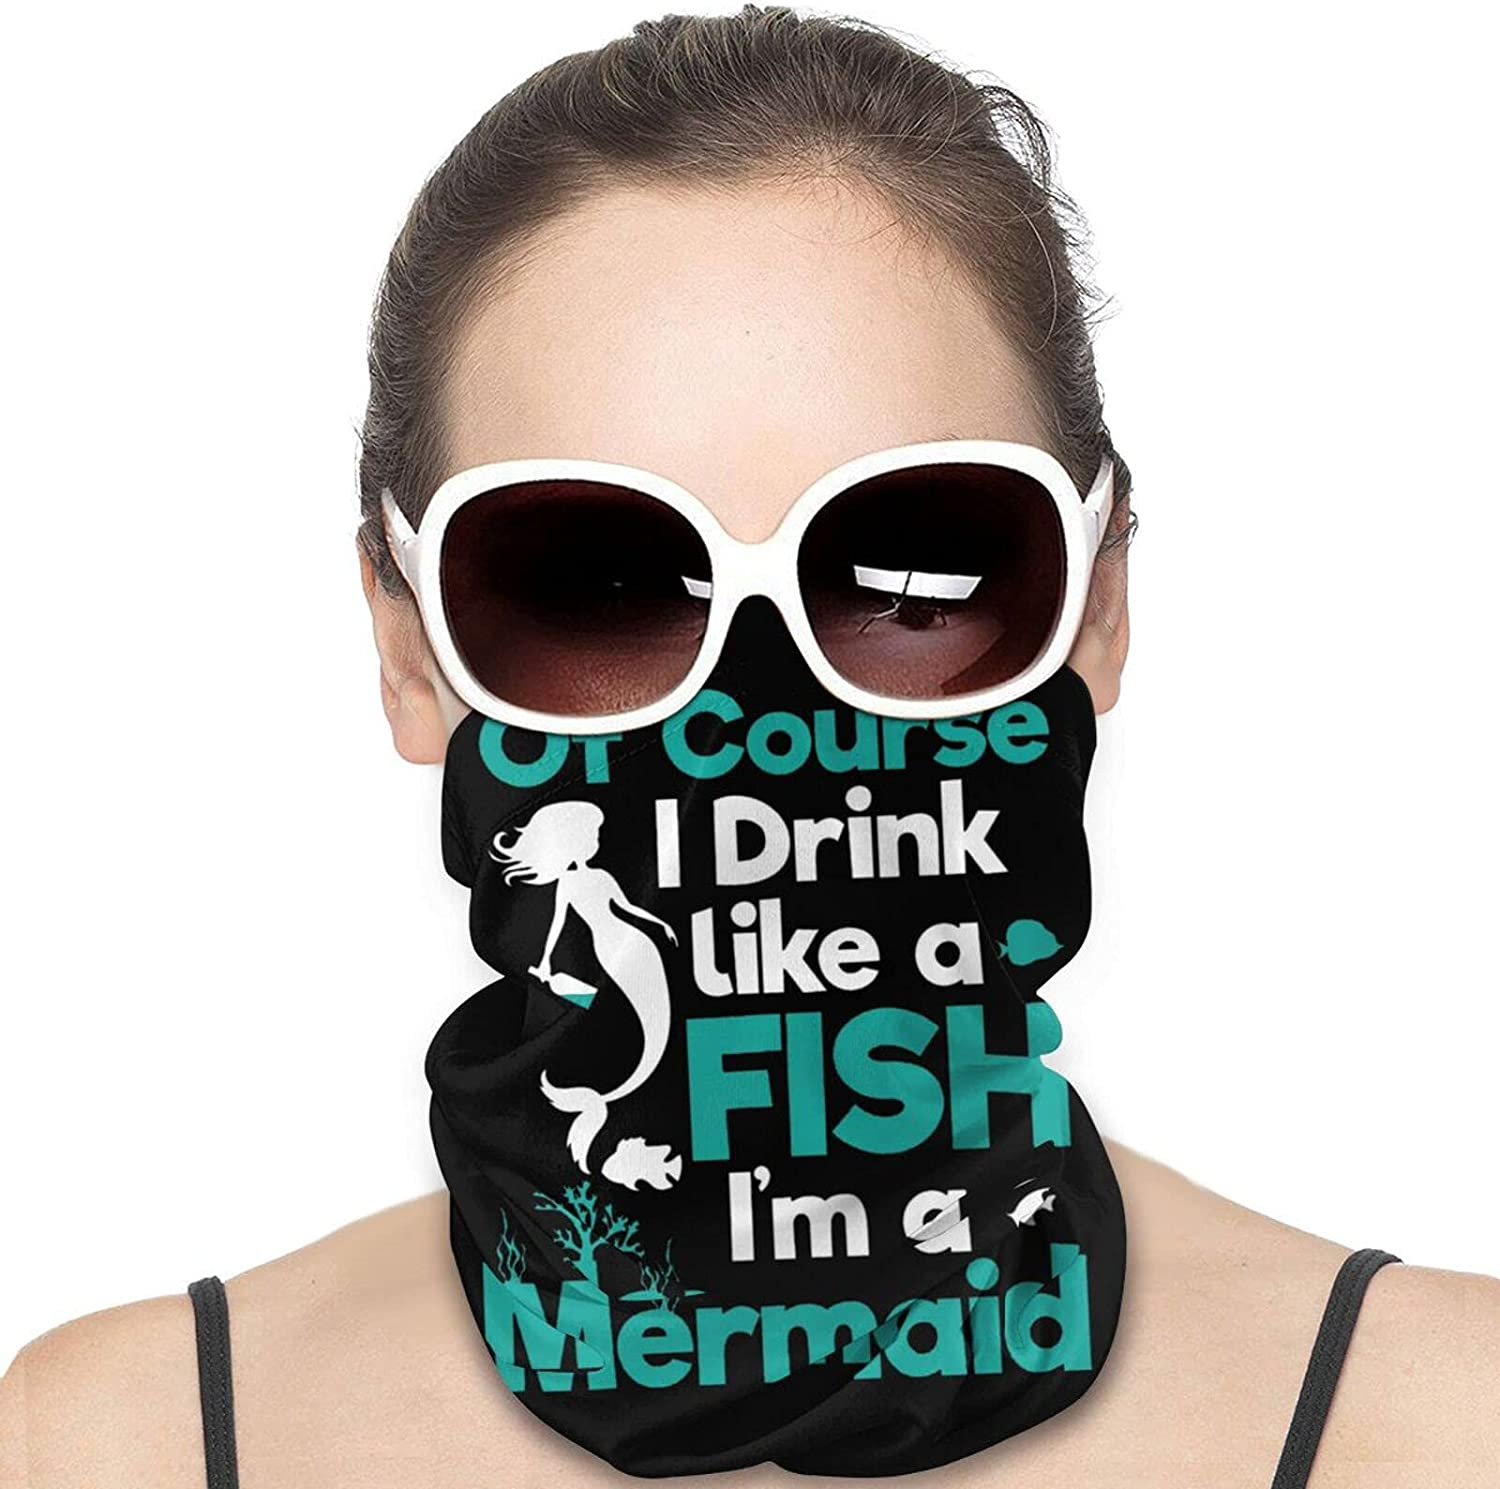 of Course I Drink Like a Fish, I'm a Mermaid Round Neck Gaiter Bandnas Face Cover Uv Protection Prevent bask in Ice Scarf Headbands Perfect for Motorcycle Cycling Running Festival Raves Outdoors